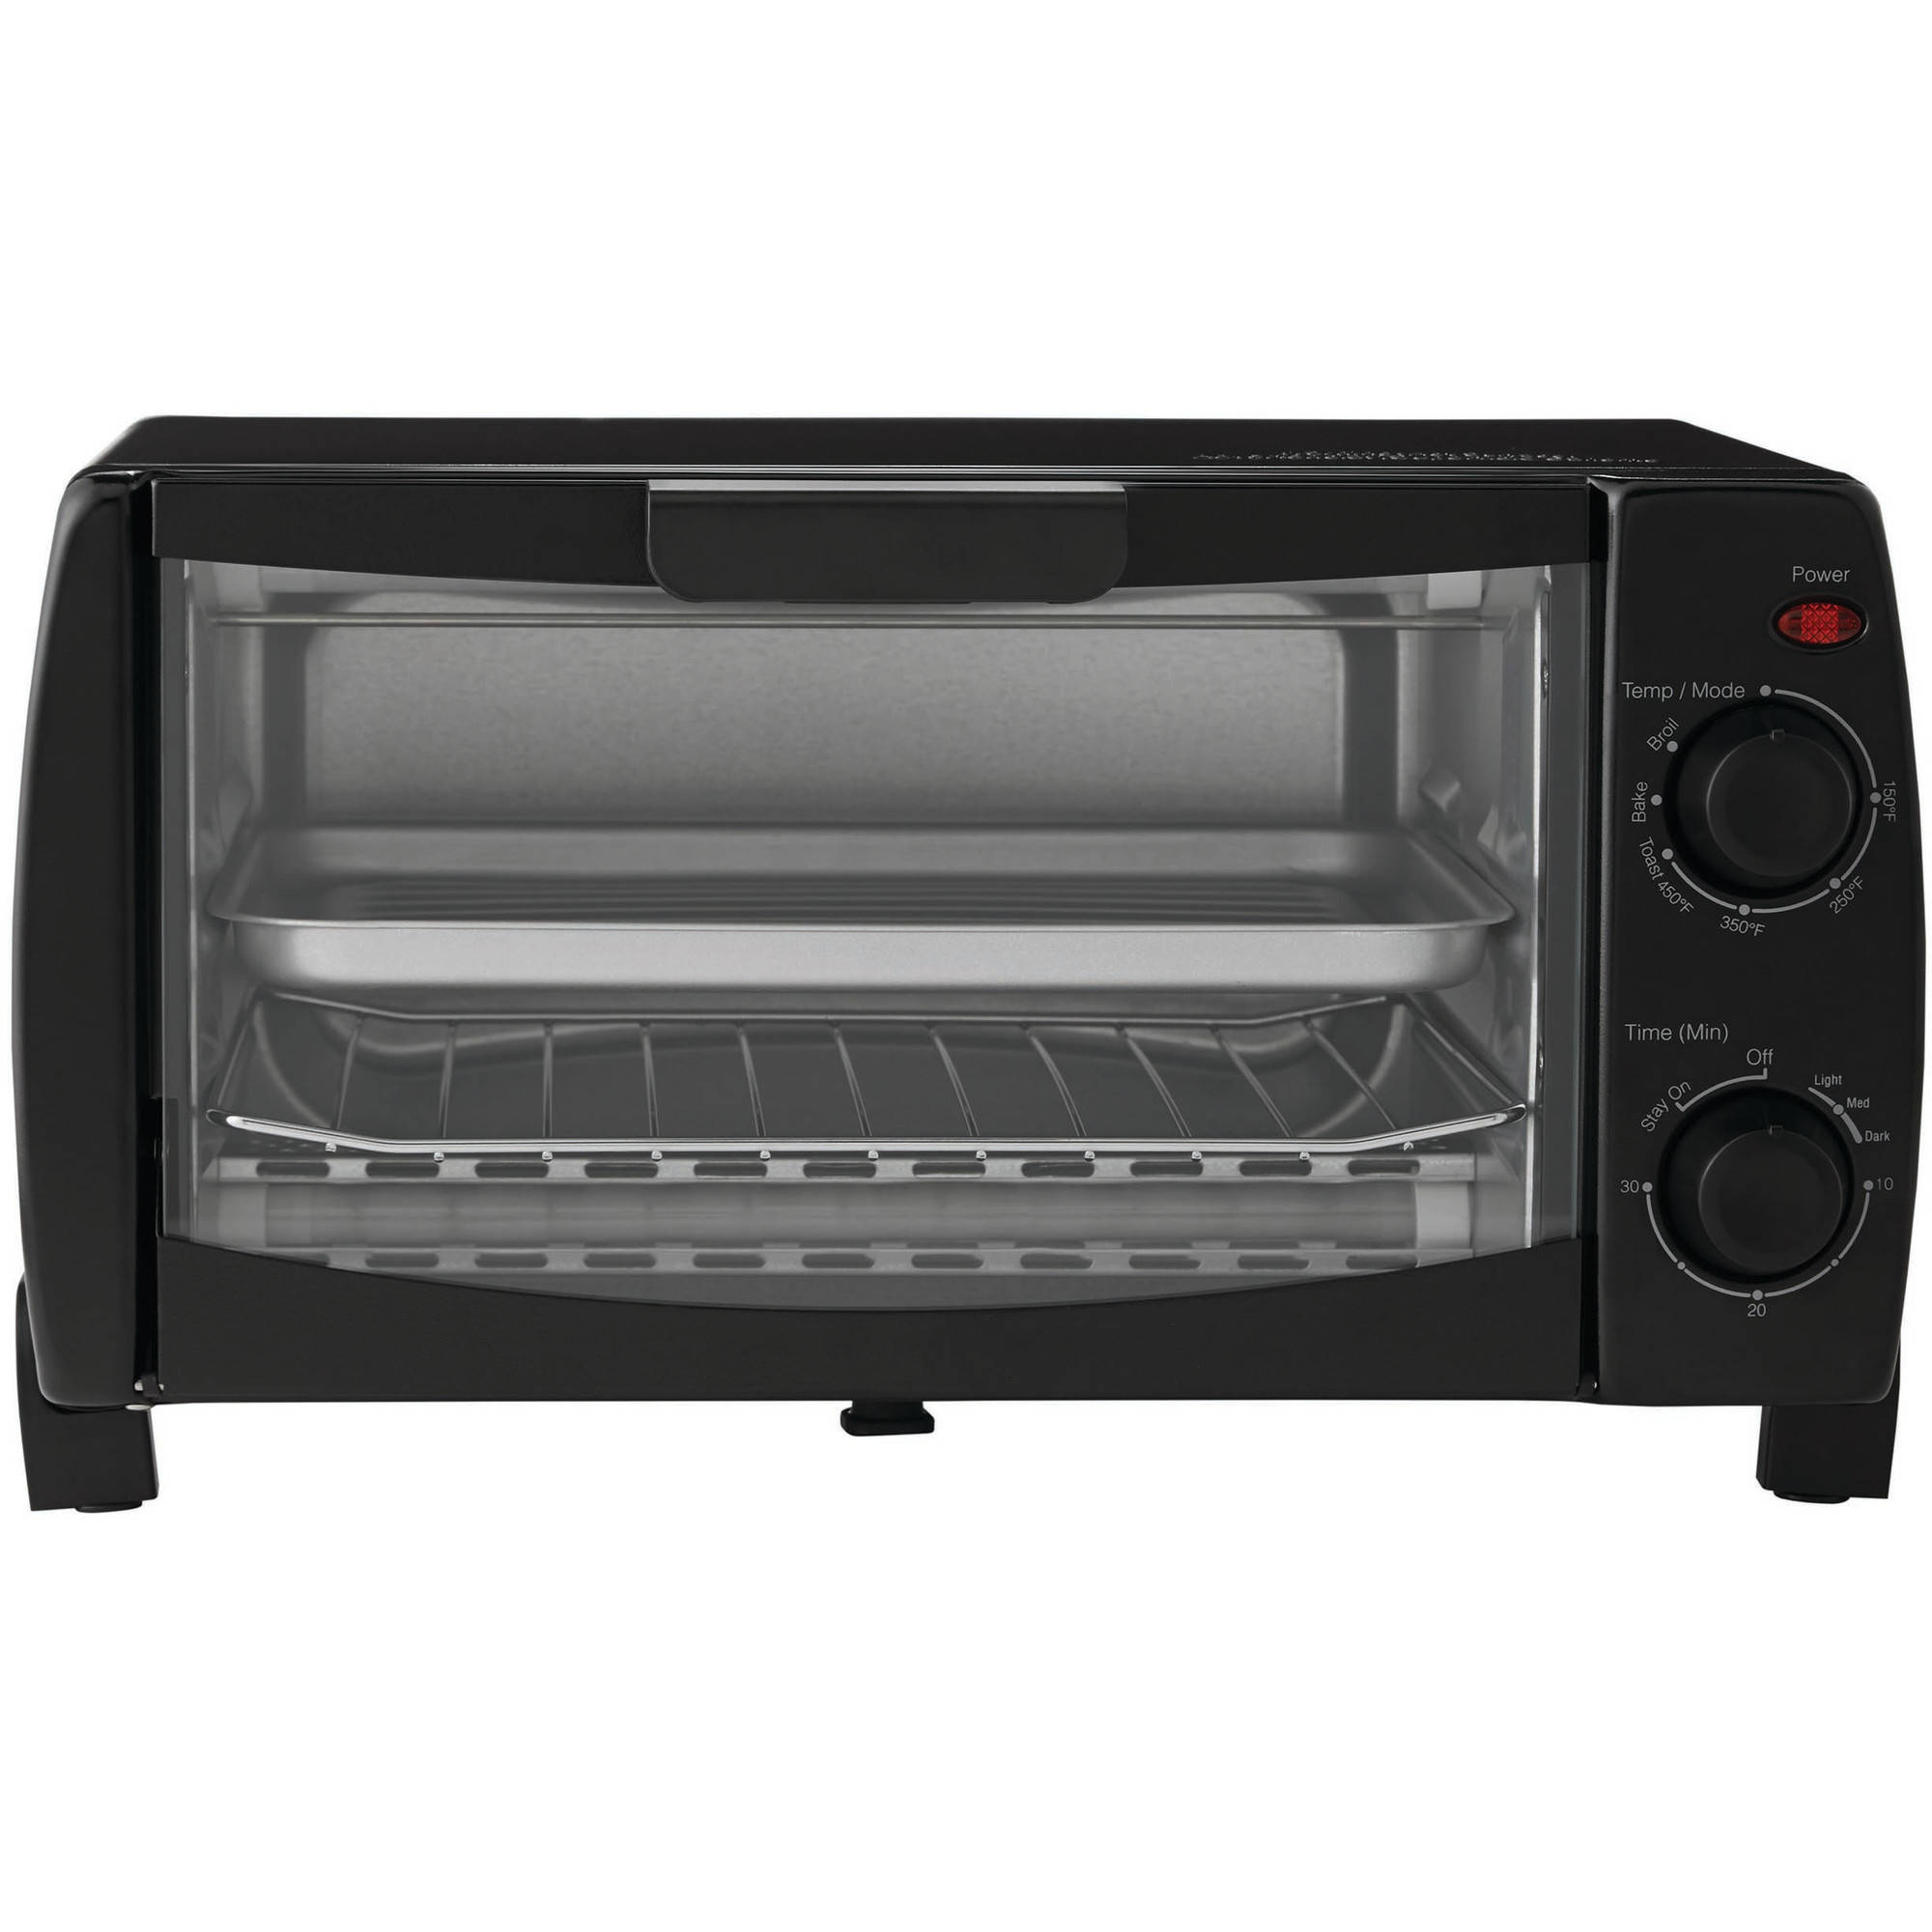 slots up reheat large silver product cool removable stainless for bagels tray bread pop slice with retro control vremi temp black wide steel and toaster crumb defrost